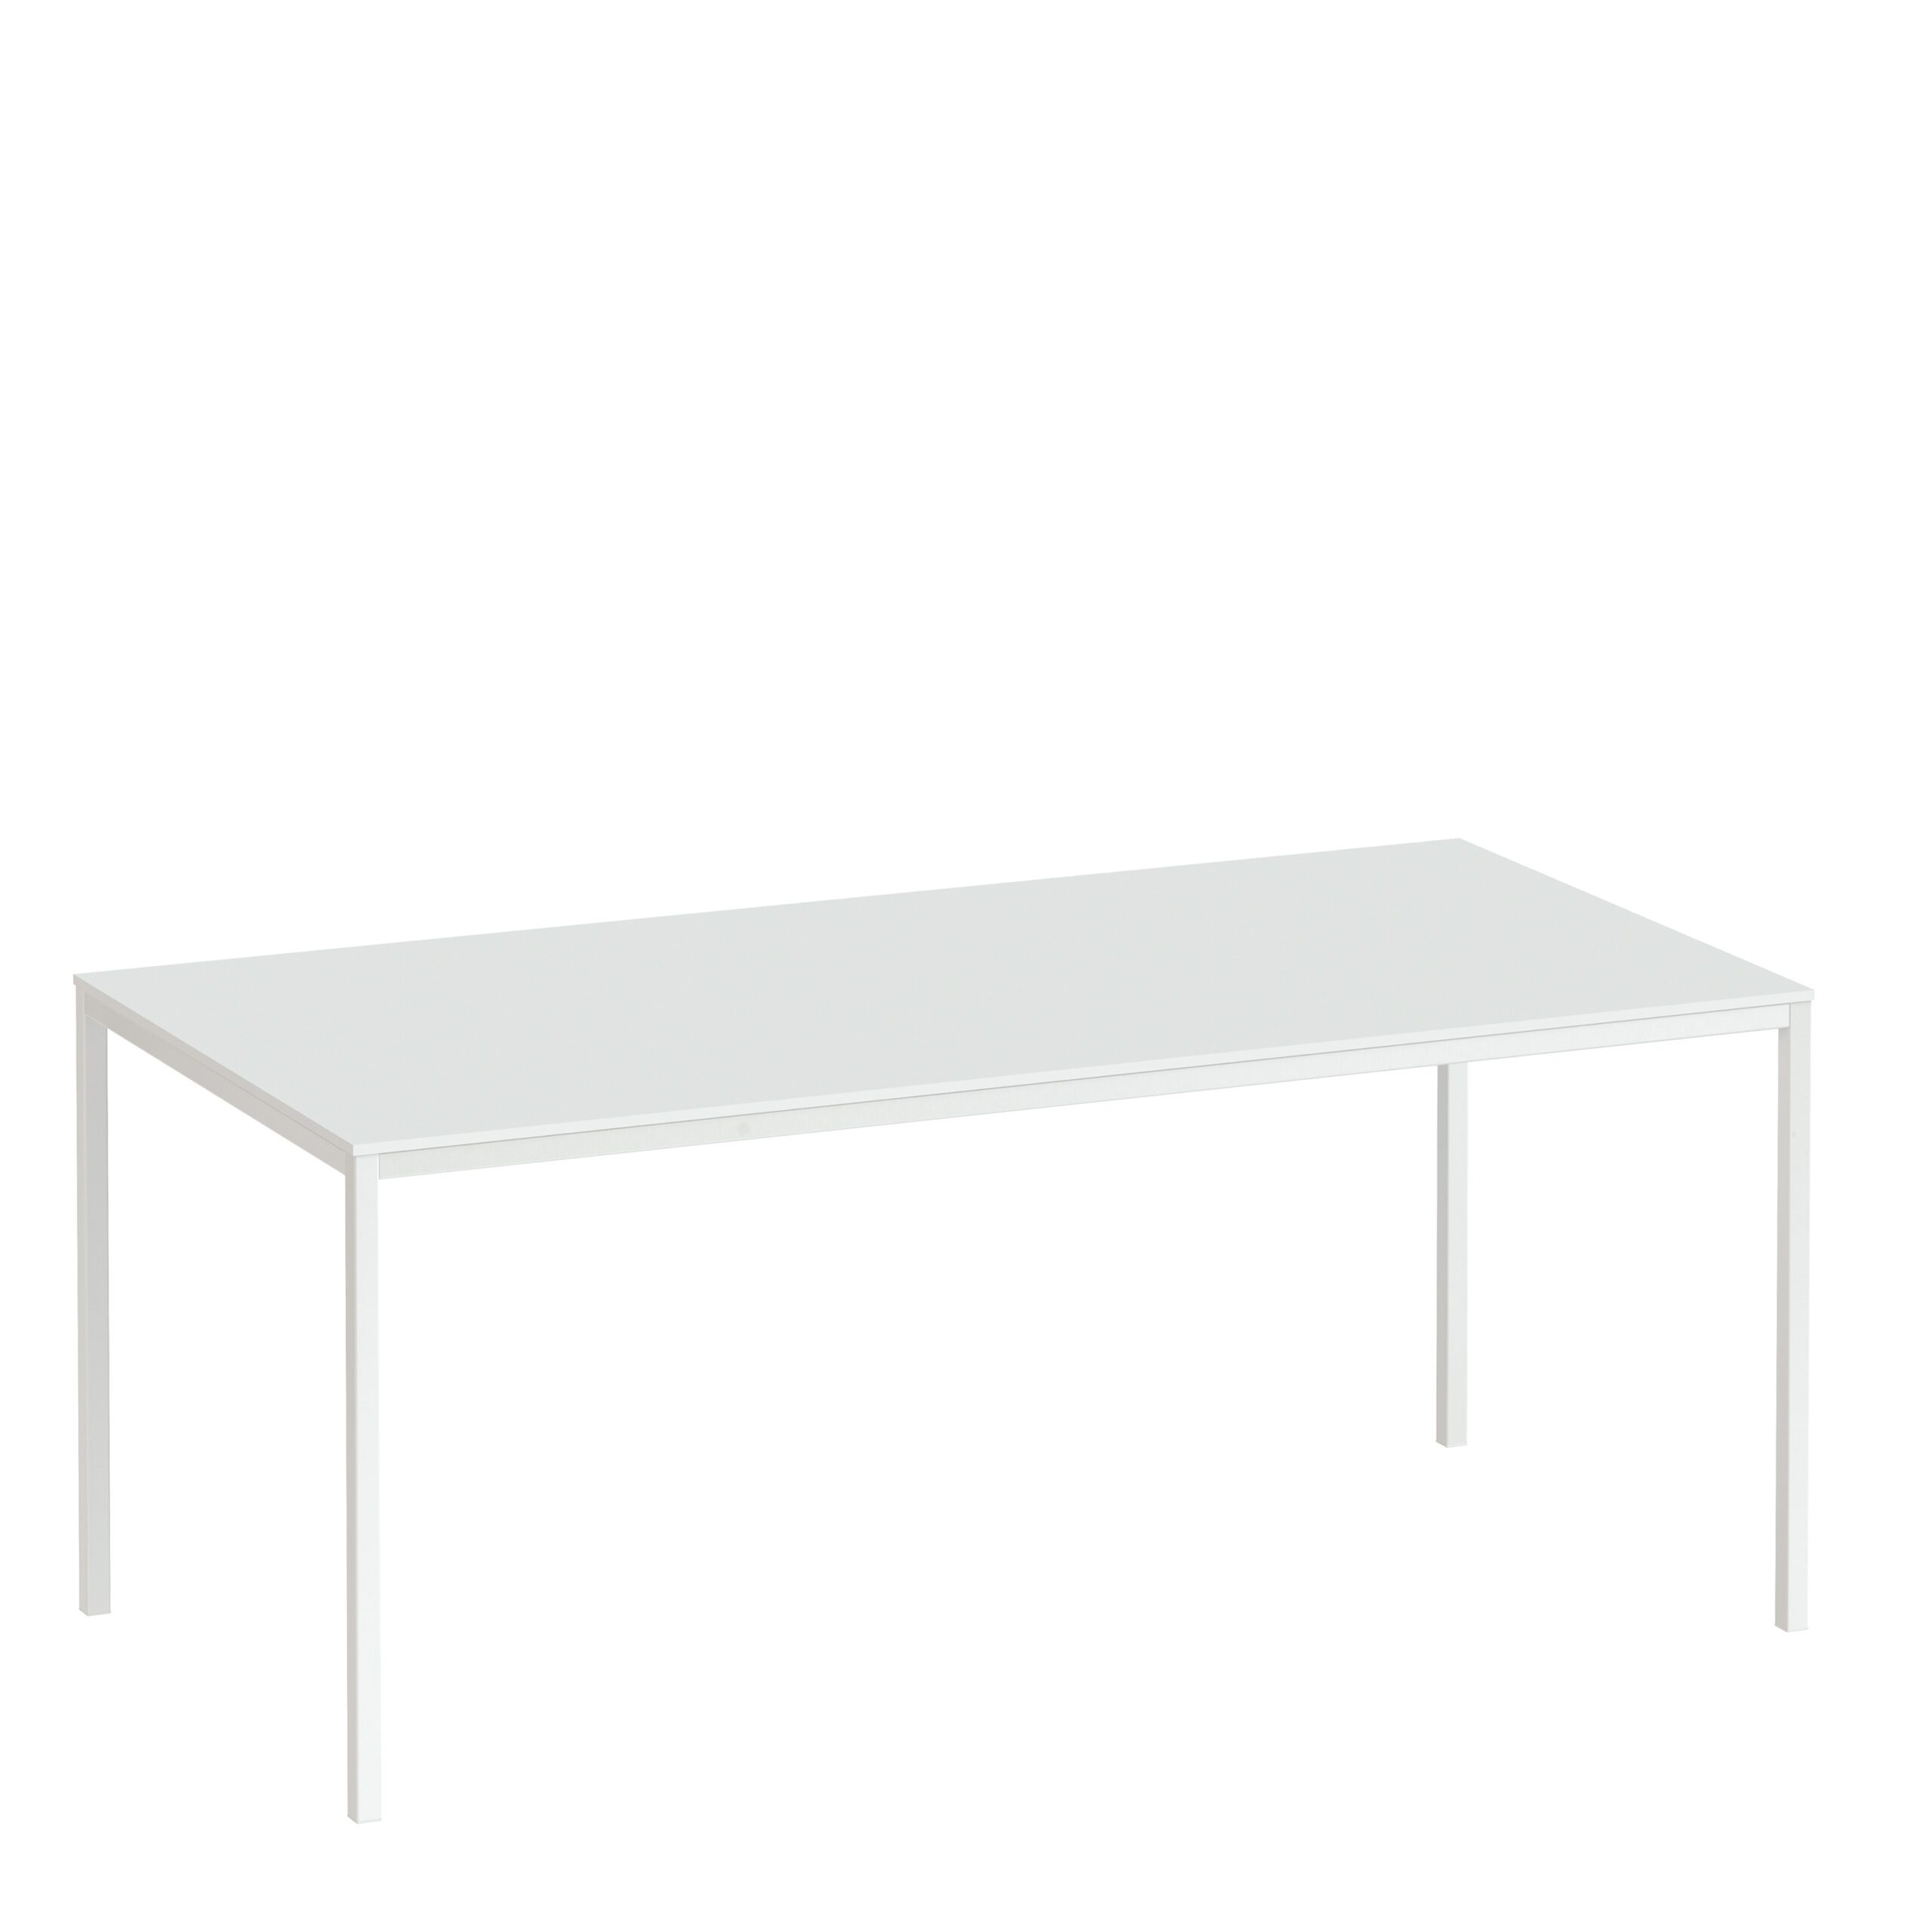 Folks Dining Table 140cm White Table Top with White Legs